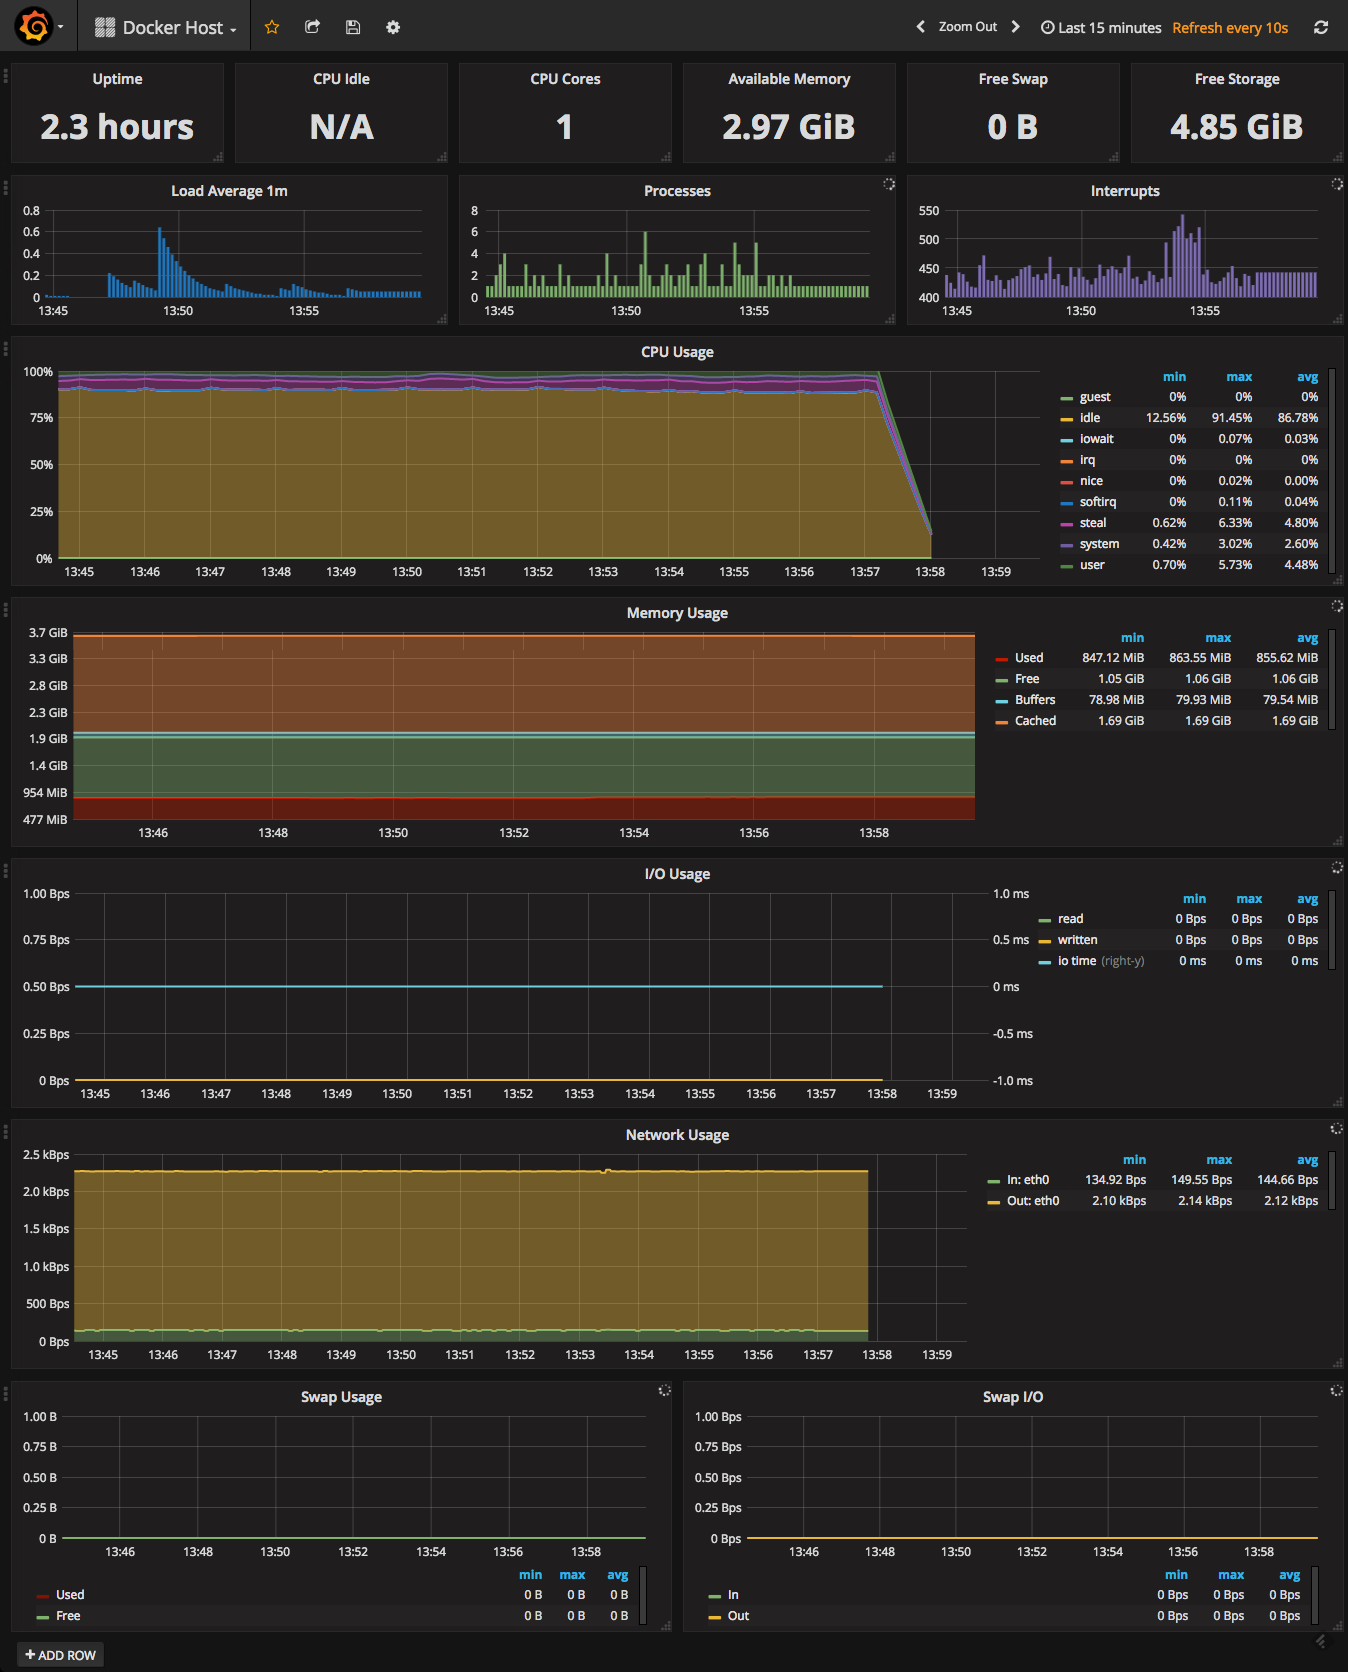 docker host dashboard